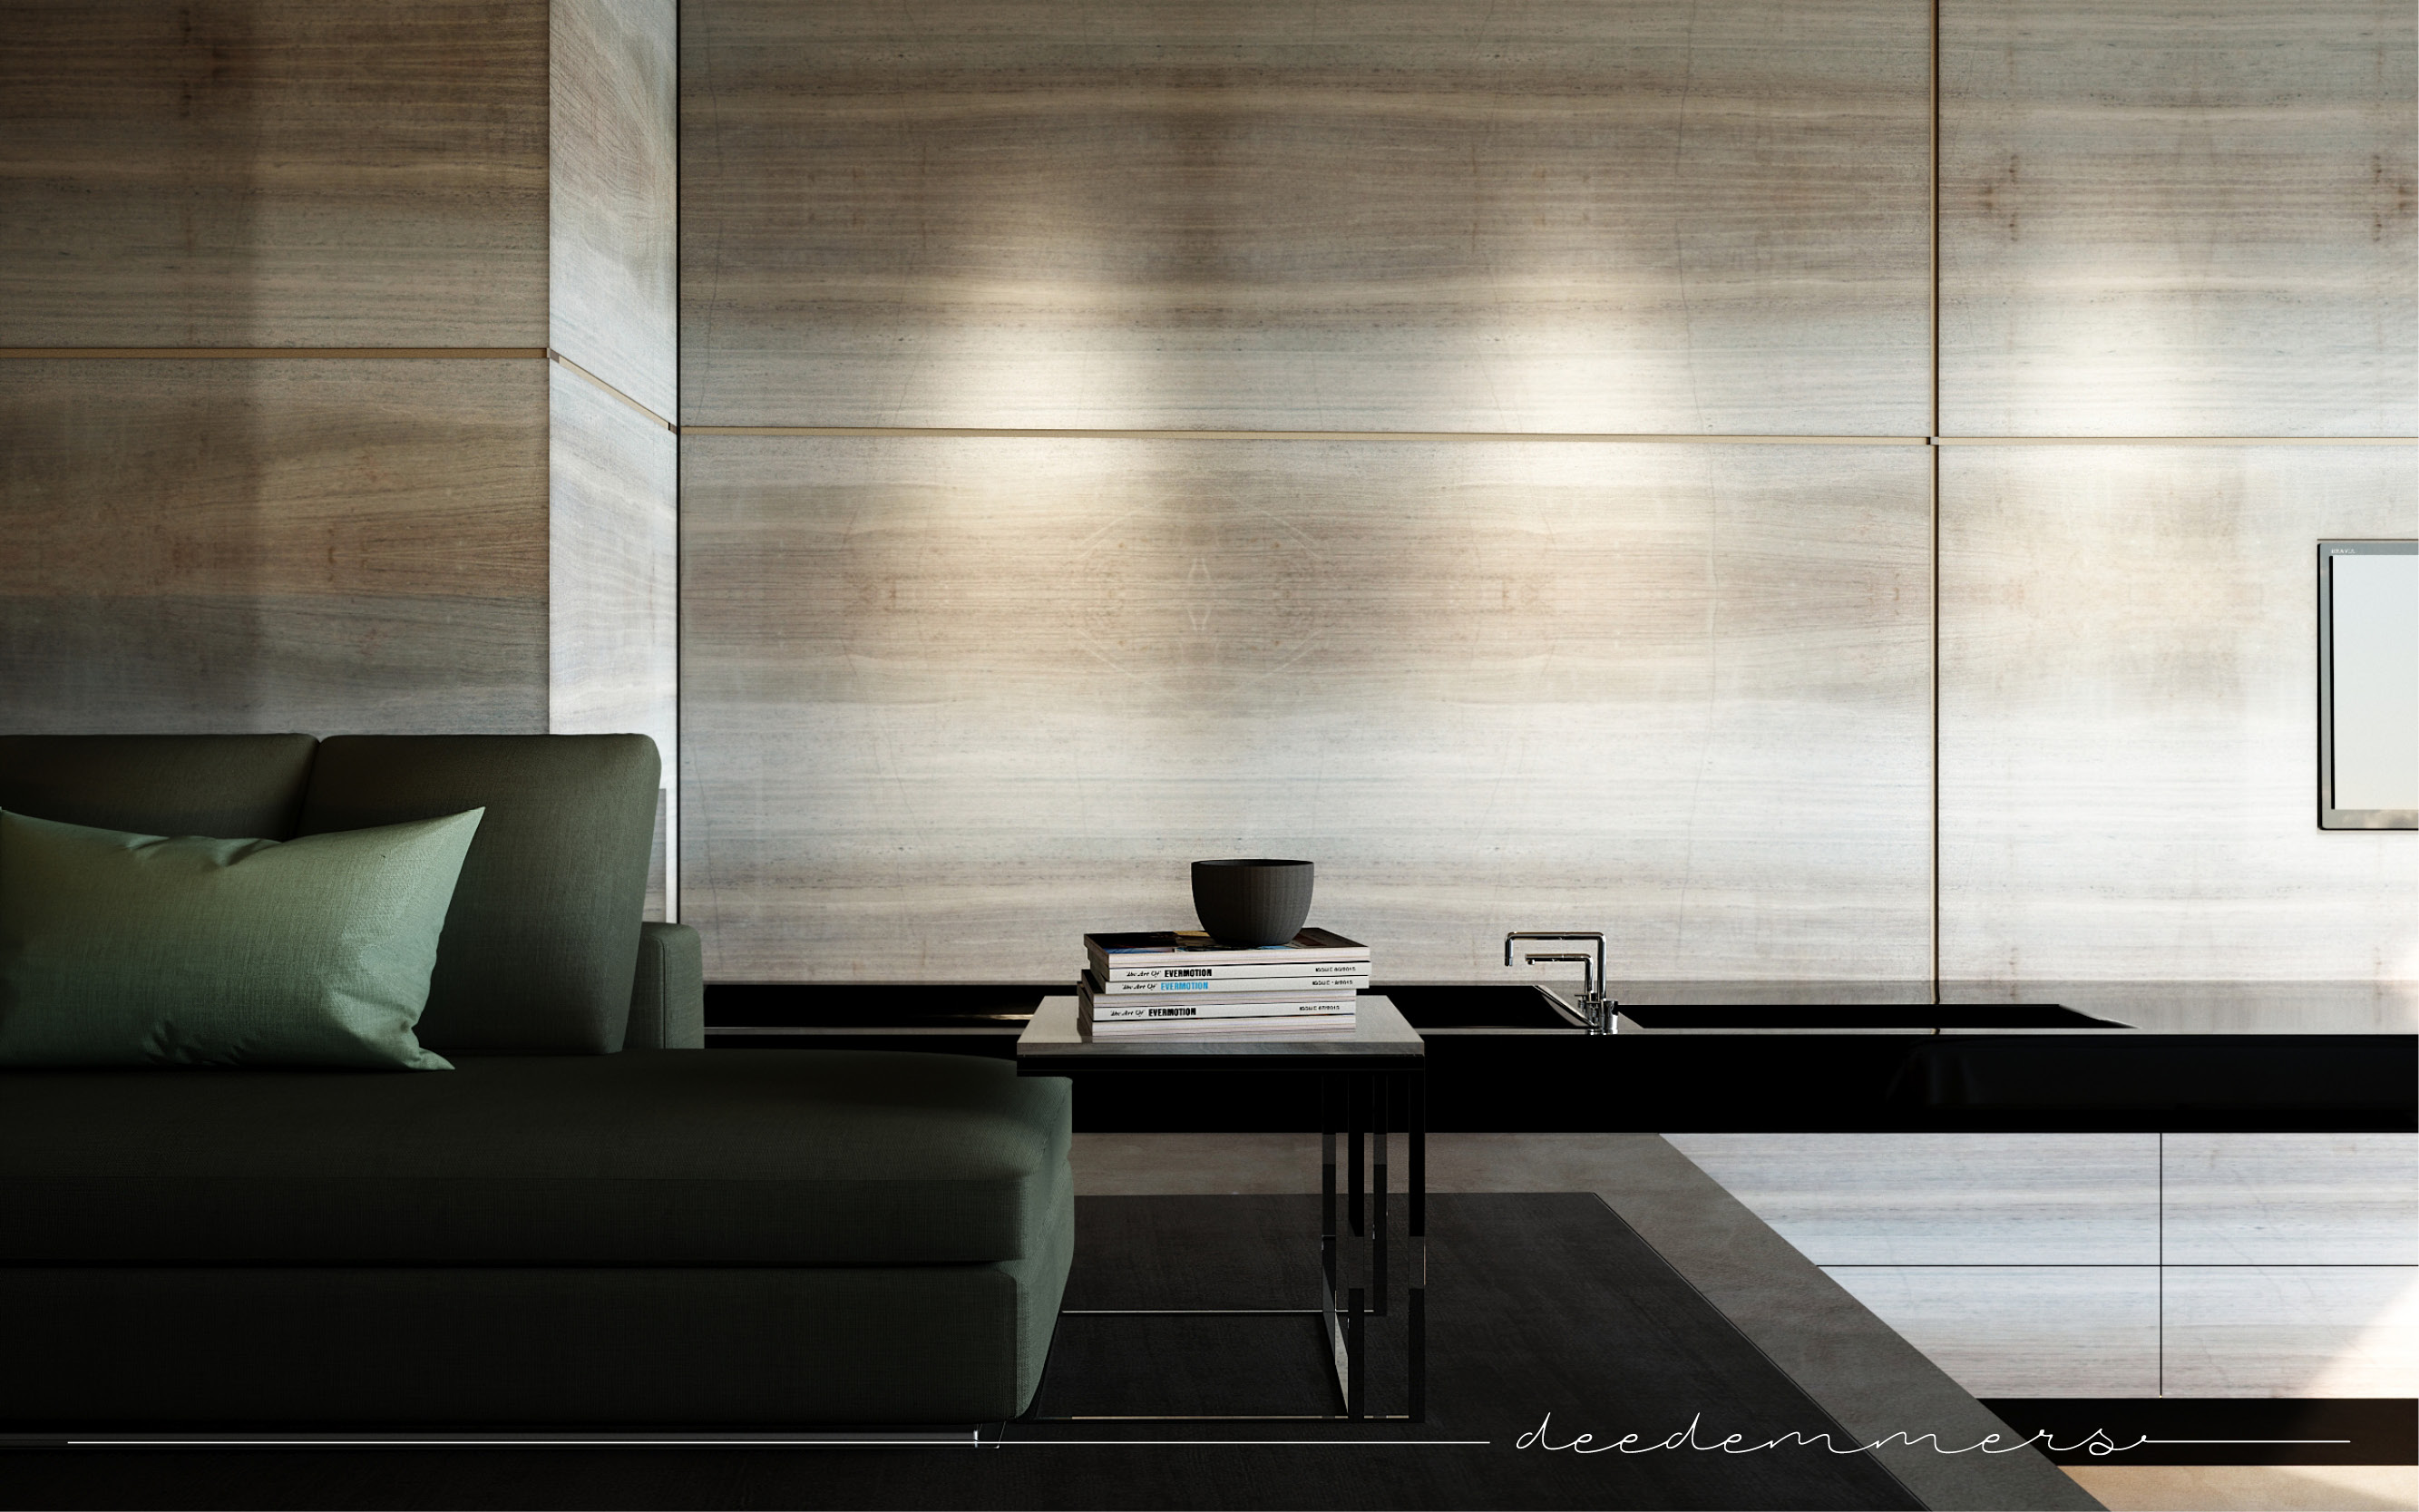 interieur design - Smooth Warmth by Deedemmers